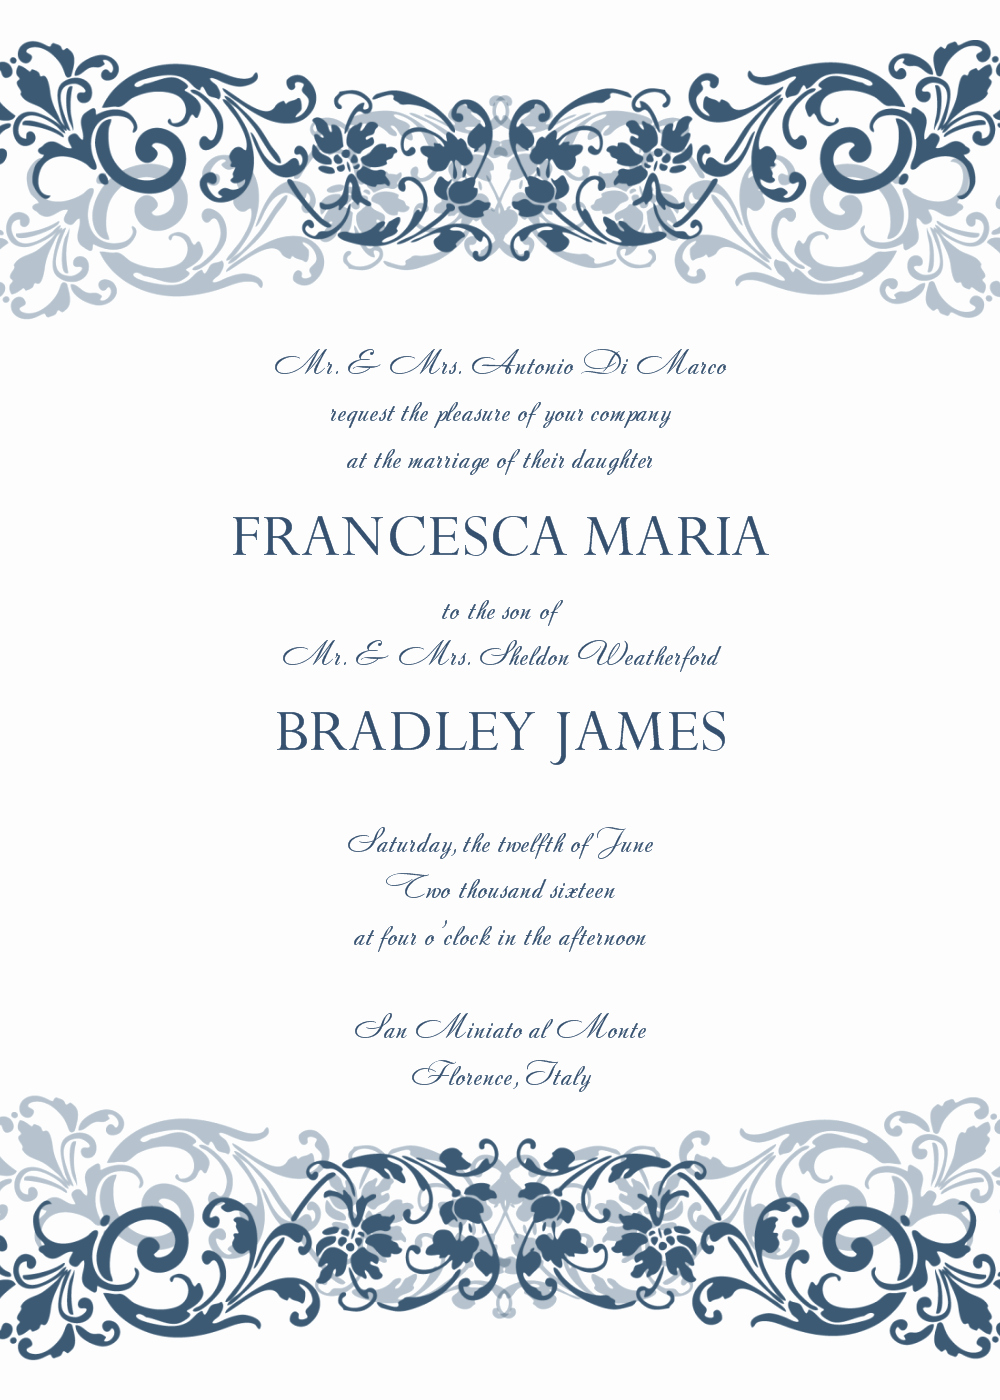 Wedding Invitation Template Free Elegant 8 Free Wedding Invitation Templates Excel Pdf formats